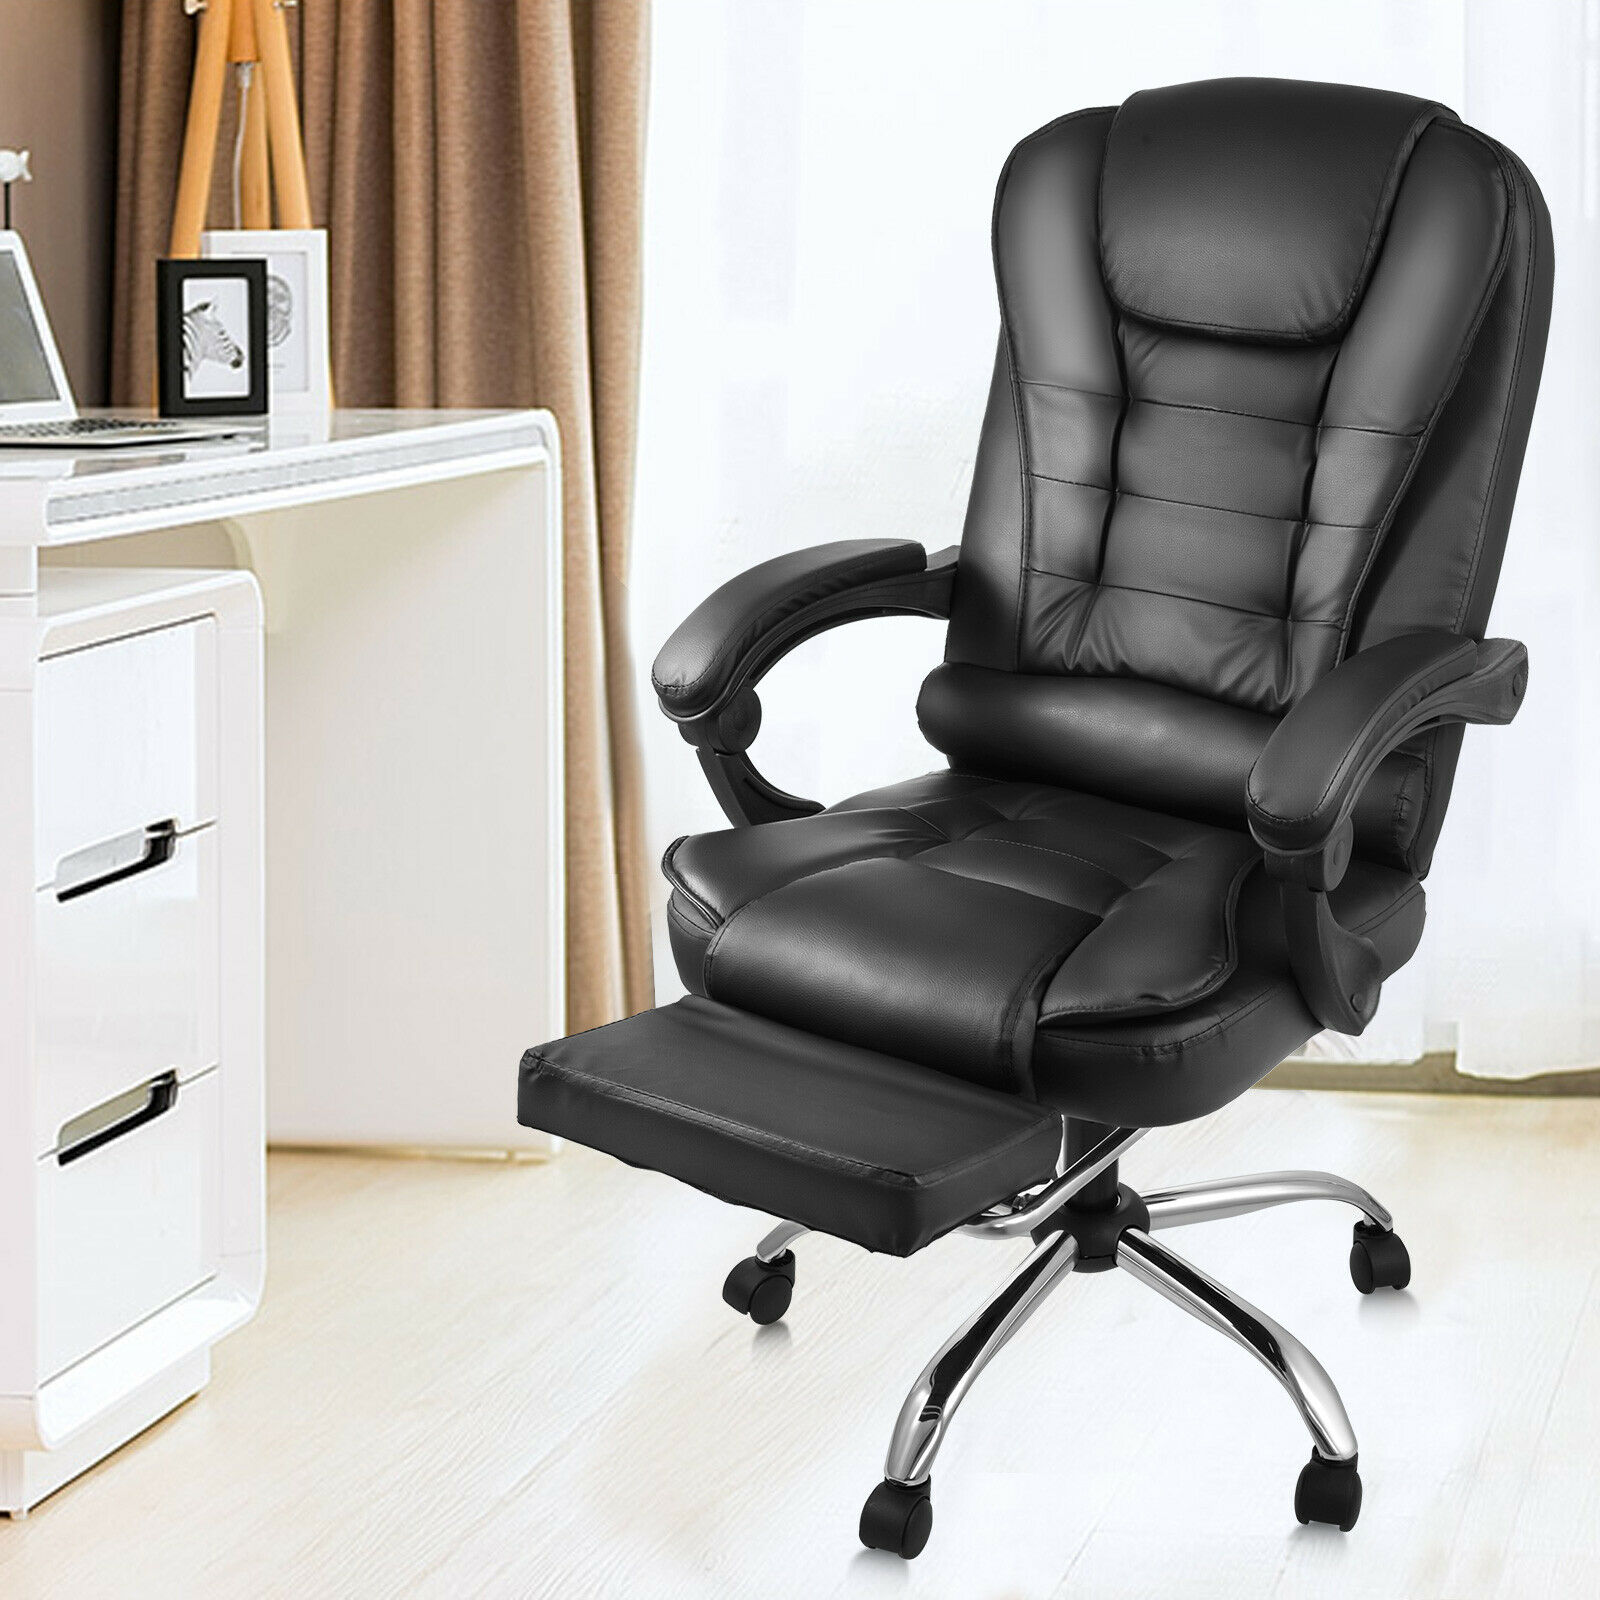 Office Chair Home Computer Gamer Silla Leather Lifte Reclining Swivel Chaise For Rest Work